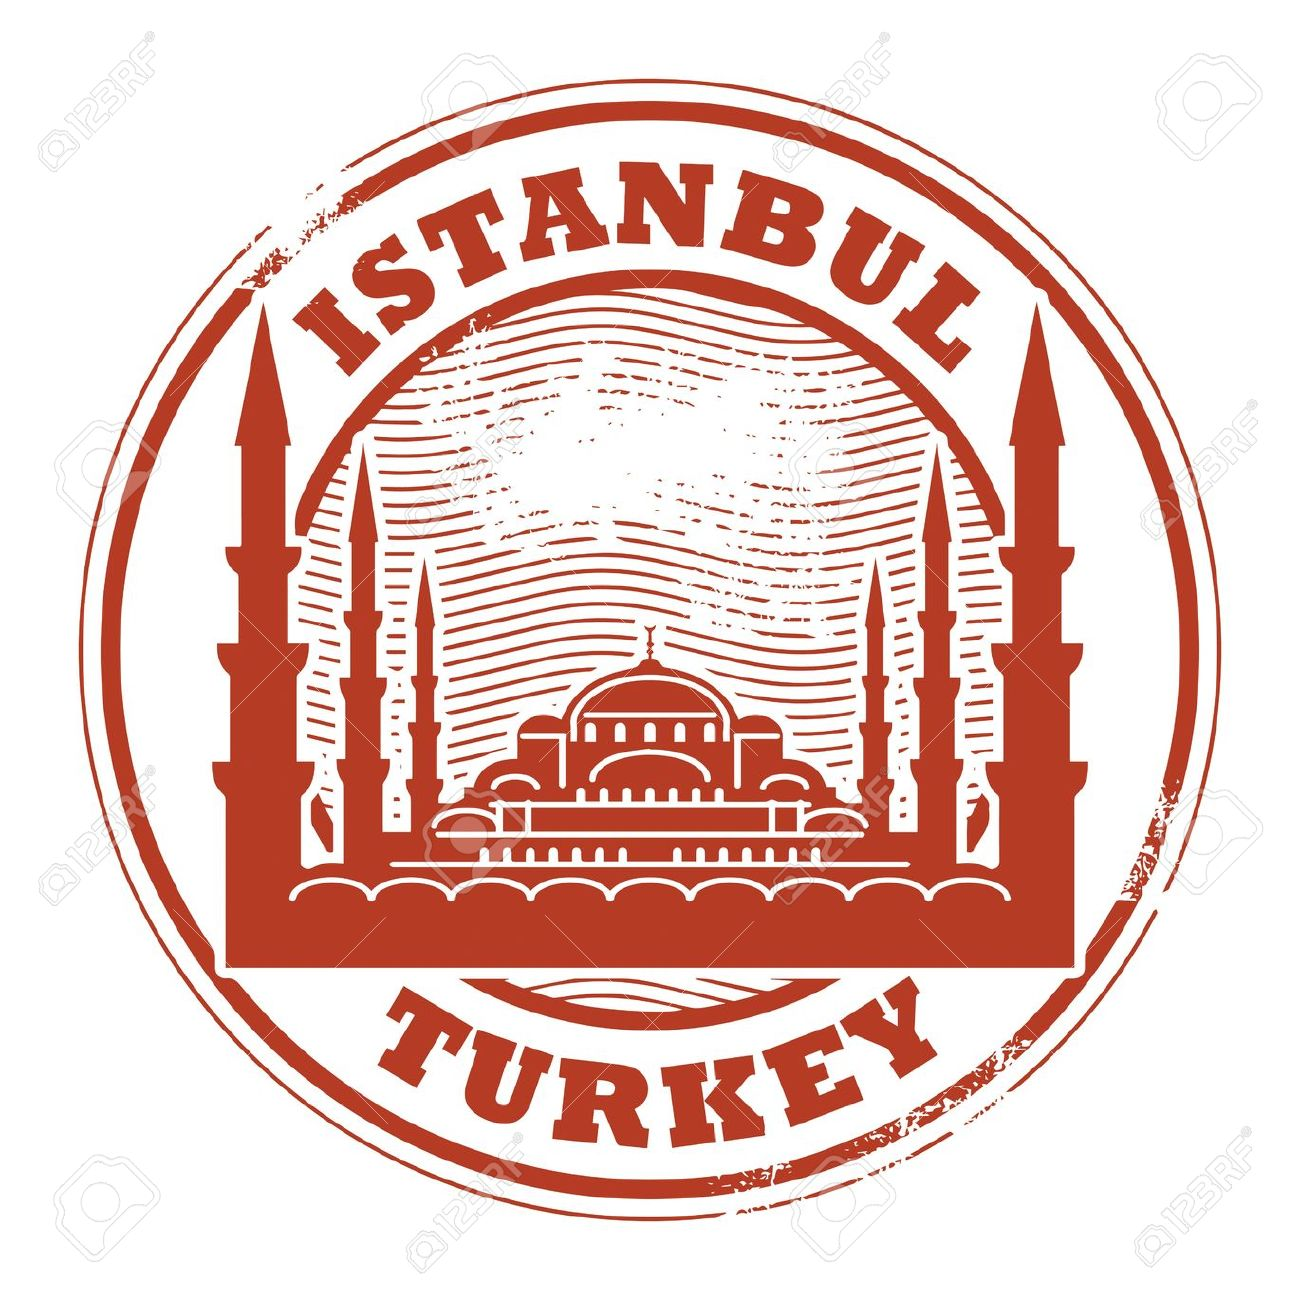 Istanbul clipart #11, Download drawings